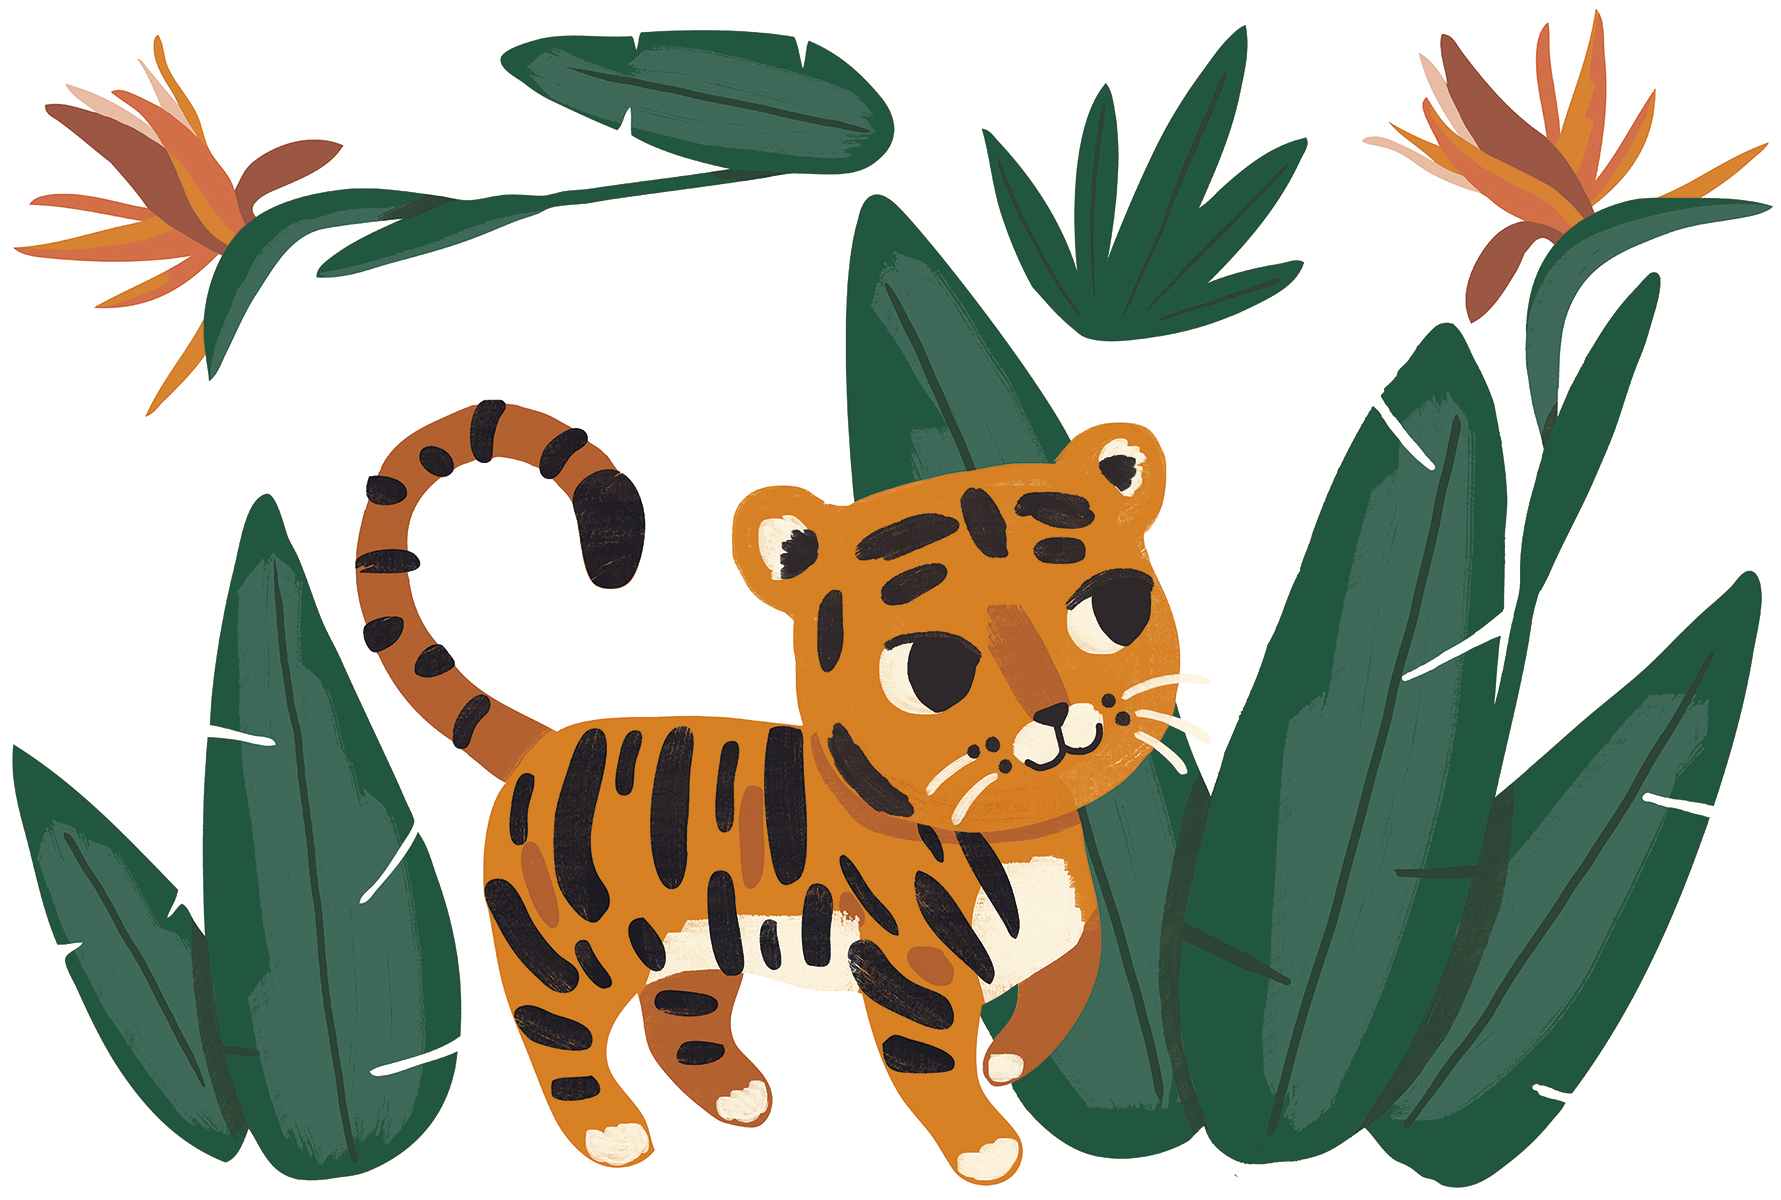 Sticker mural jungle Tigre et feuilles - Stickers enfant de Lilipinso | Réf. LILI-S1373